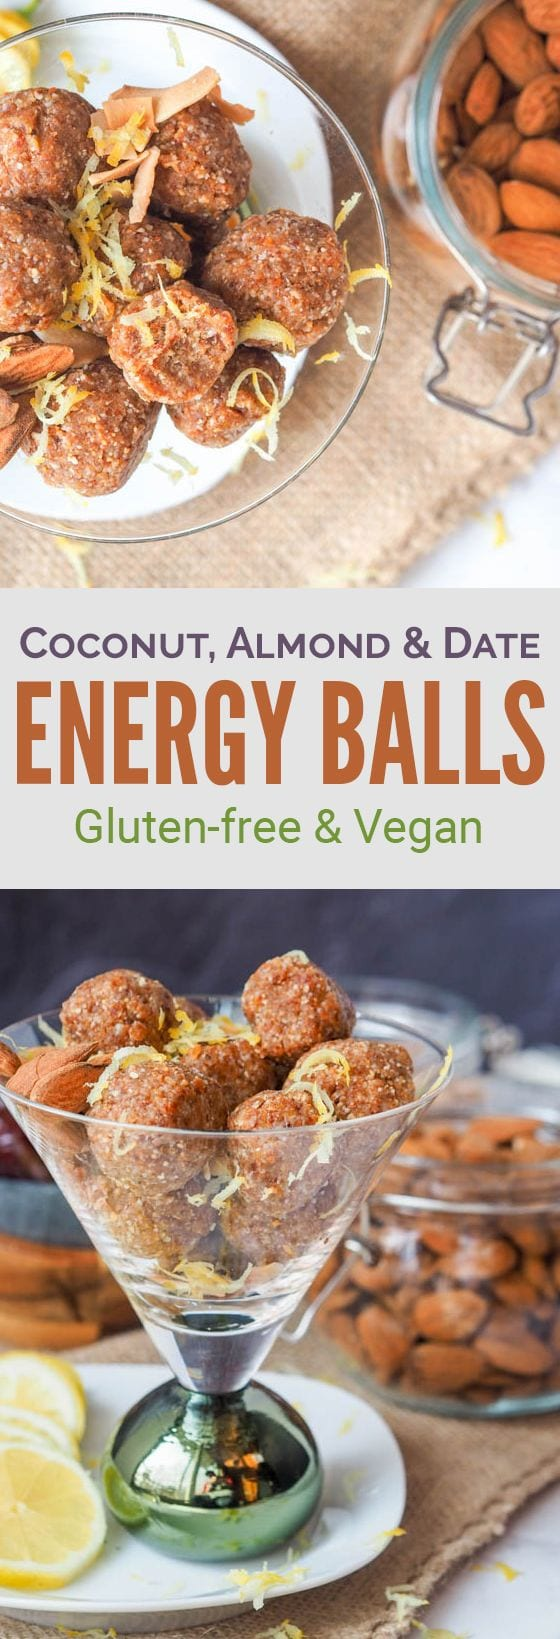 Five ingredient coconut almond date energy bites come together in under 15 minutes and make for a super zesty and refreshing snack that is also healthy, gluten-free, vegan and refined sugar free. #snack #energyballs #bites #healthy #vegan #glutenfree